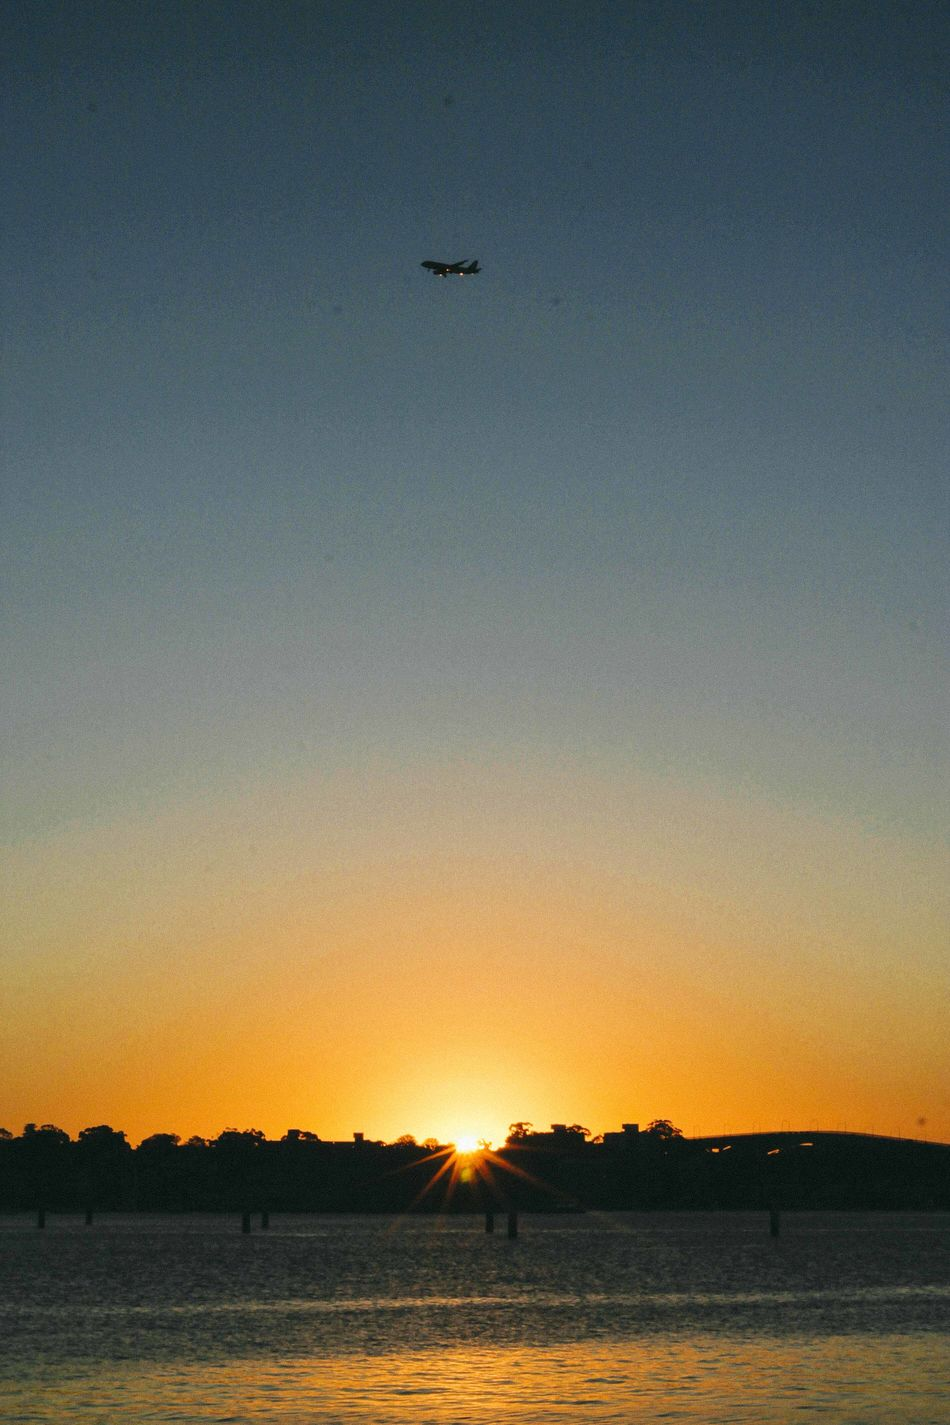 Airplane Beauty In Nature Clear Sky Day Flying Nature No People Outdoors Silhouette Sky Sunset